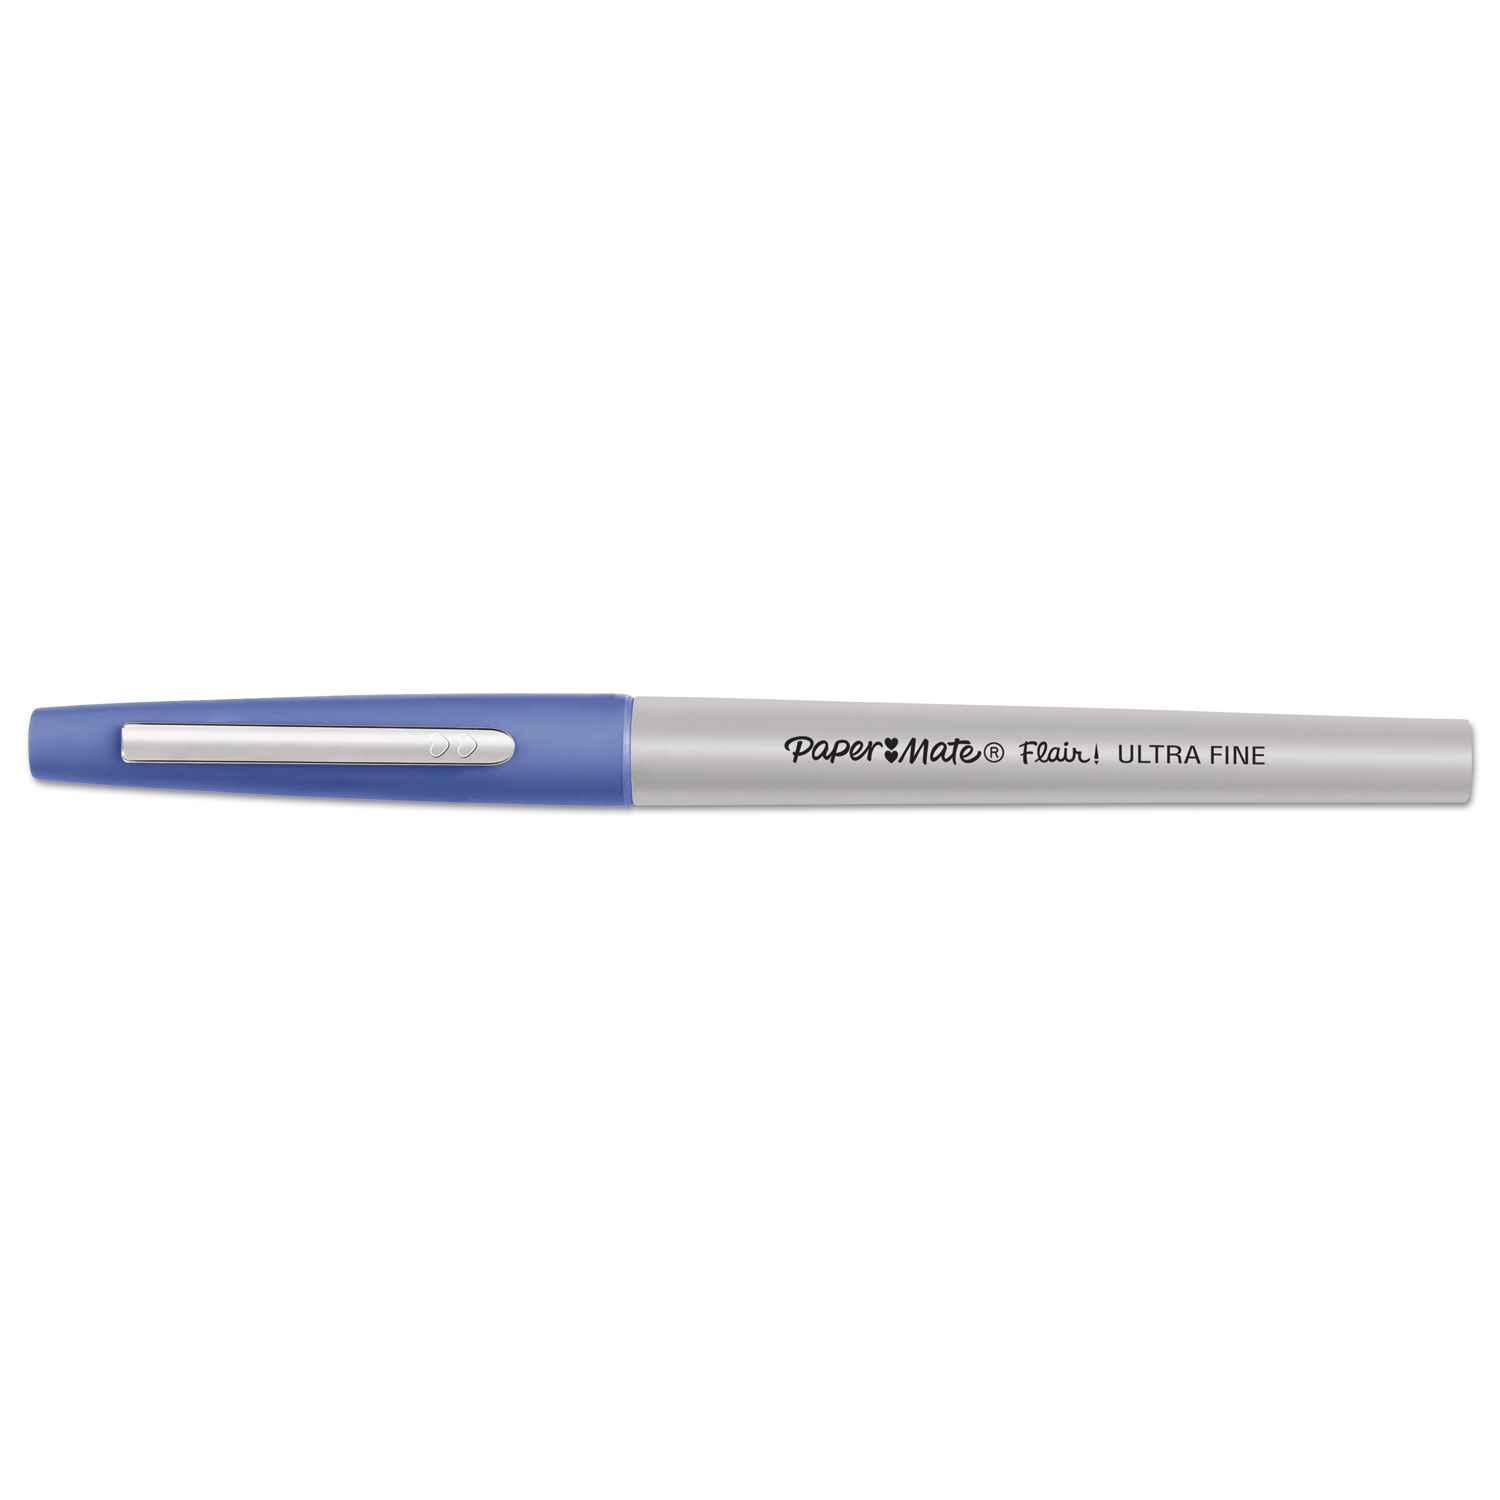 Flair Felt Tip Stick Marker Pen, 0.4Mm, Assorted Ink, Gray Barrel, 16/pack throughout Juicy Guava Credenzas (Image 14 of 30)